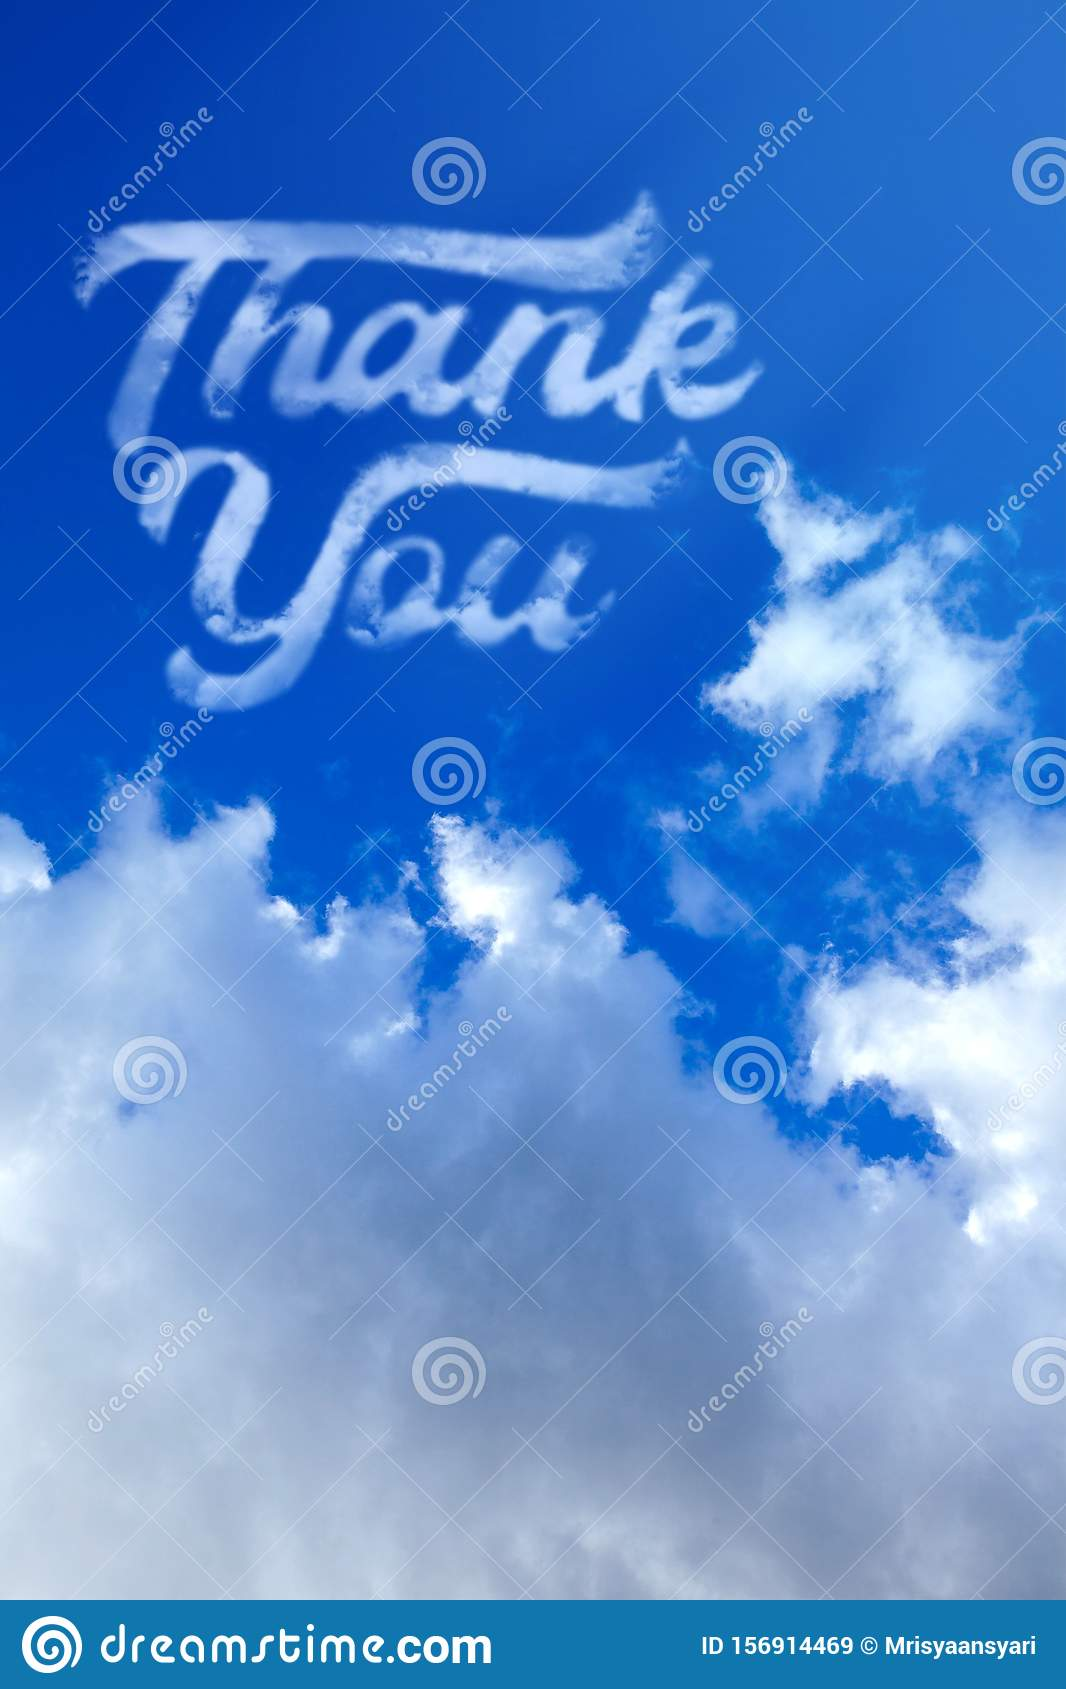 Thank You Clouds In The Sky Stock Image Image Of Concept Smoke